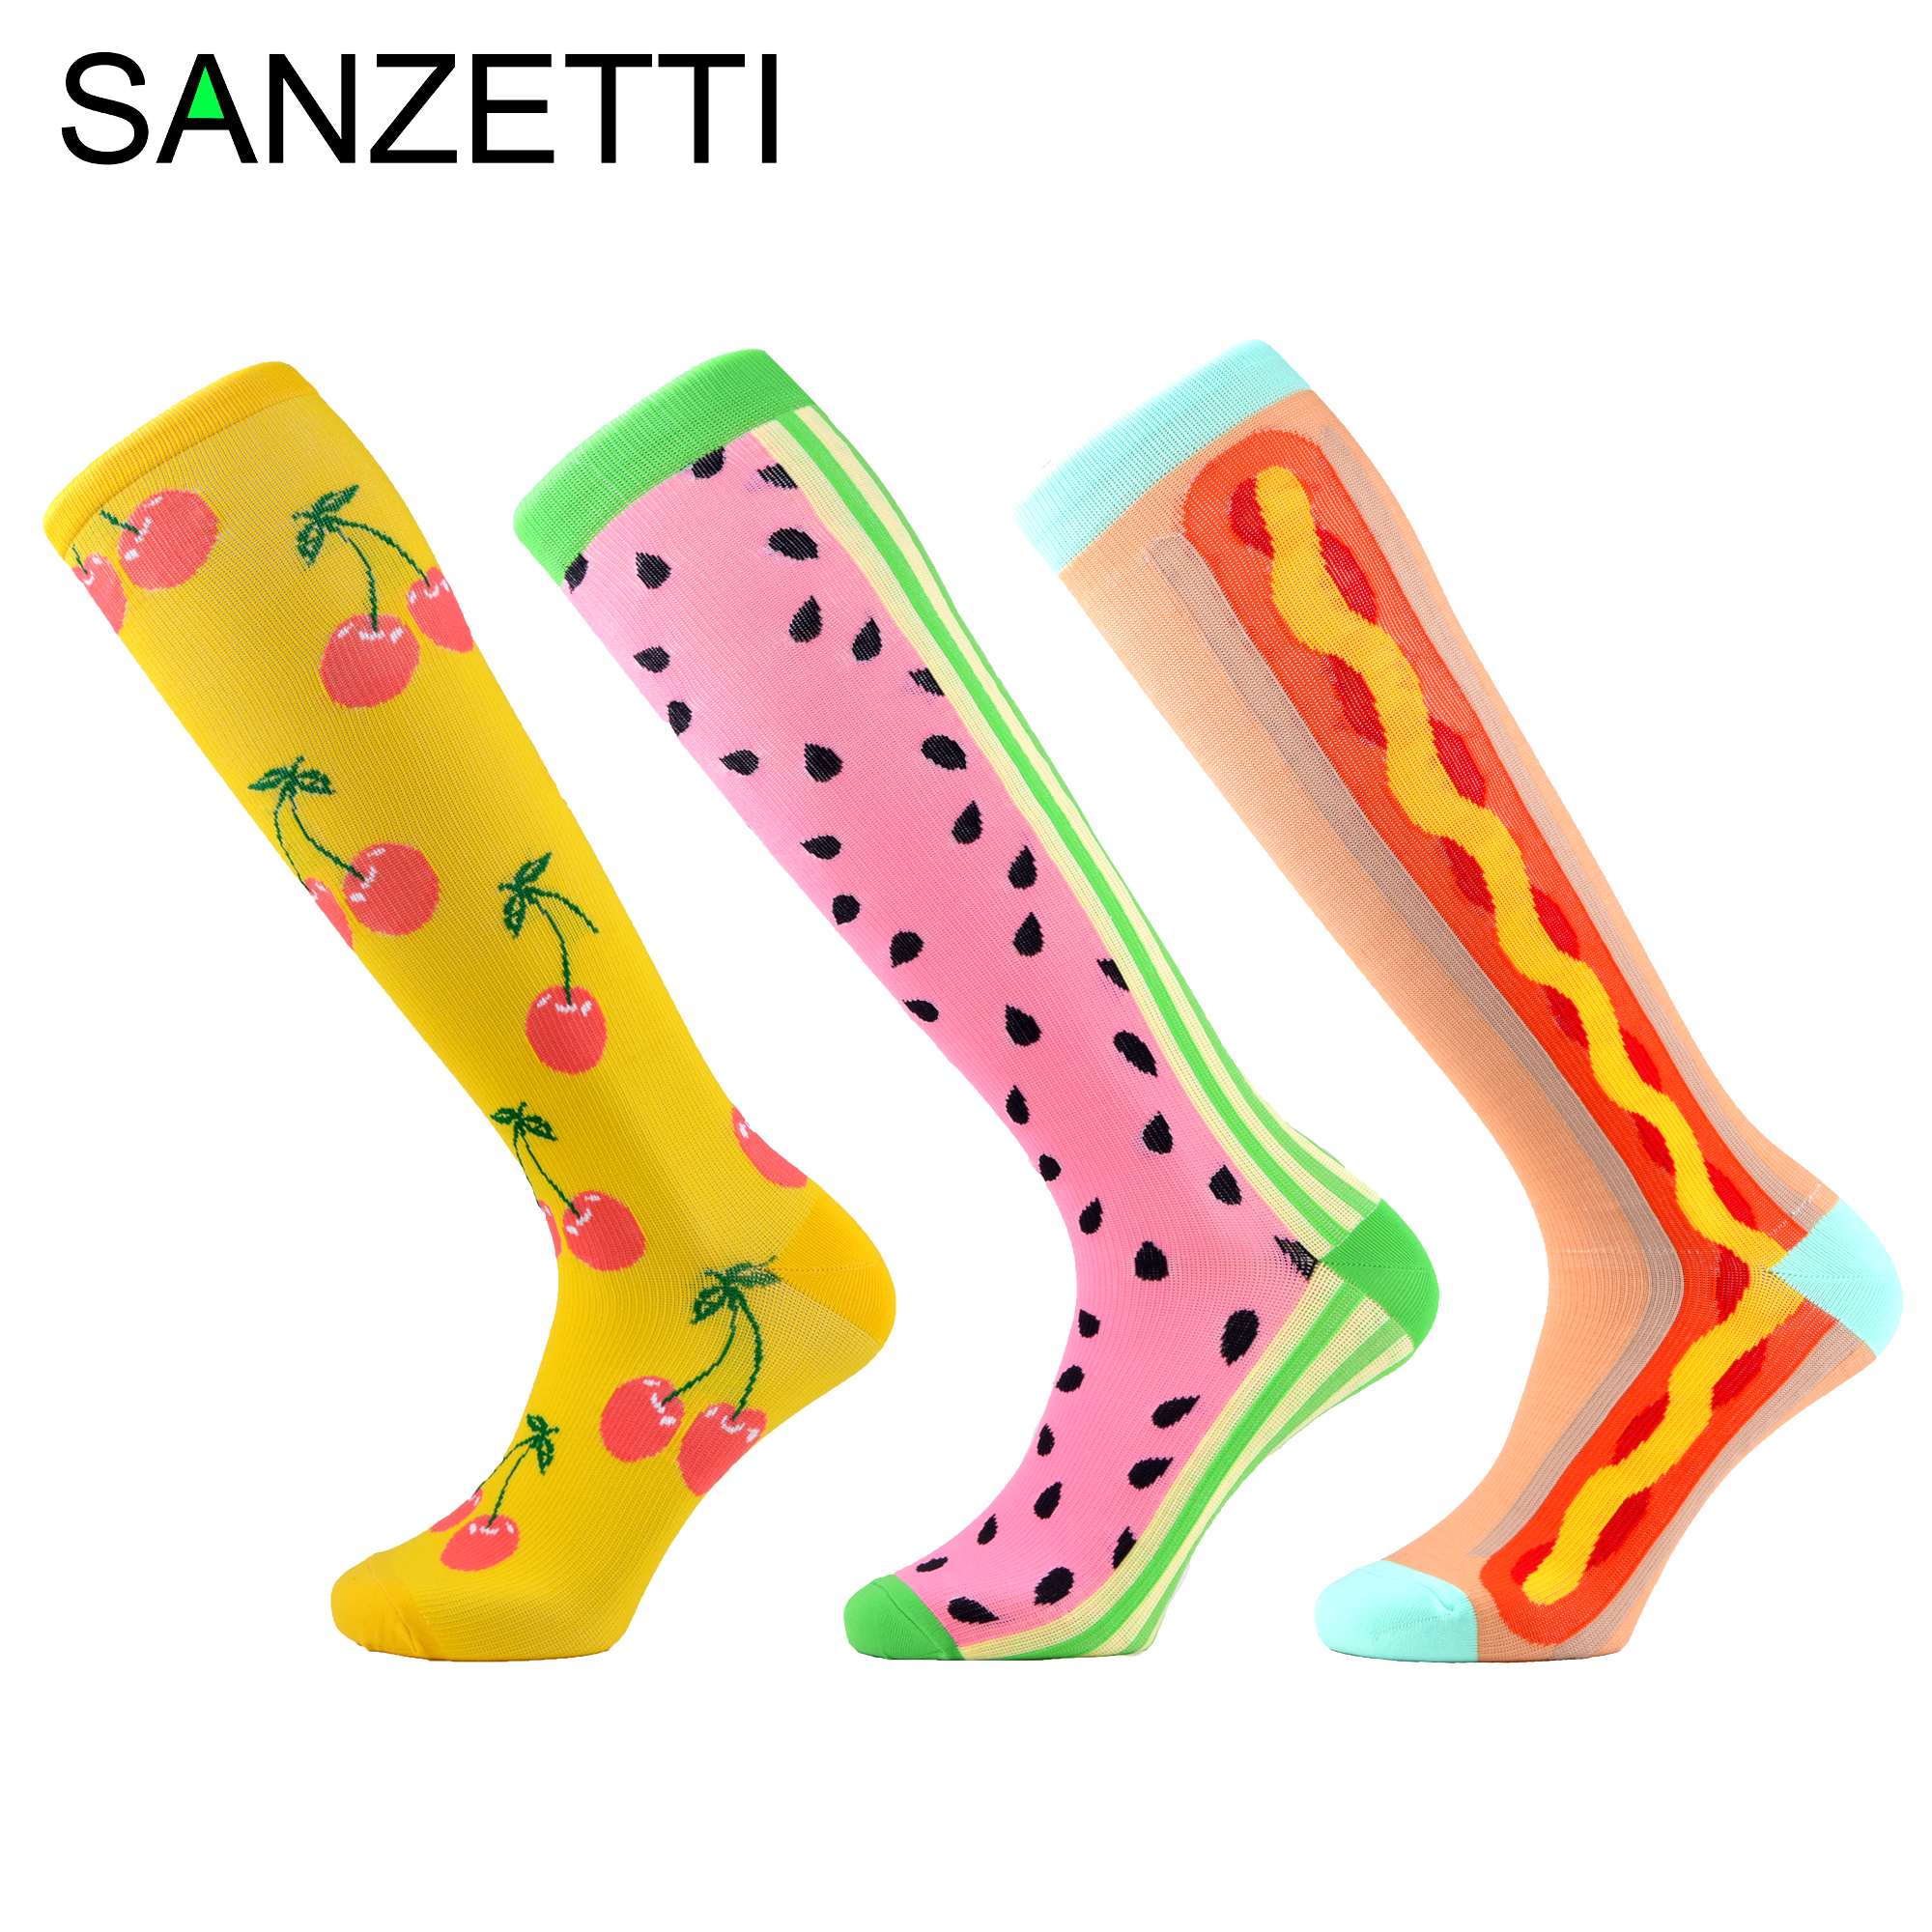 SANZETTI 3 Pairs/Lot Women Colorful Leg Support Stretch Combed Cotton Compression Socks Below Knee Anti-Fatigue Long Happy Socks